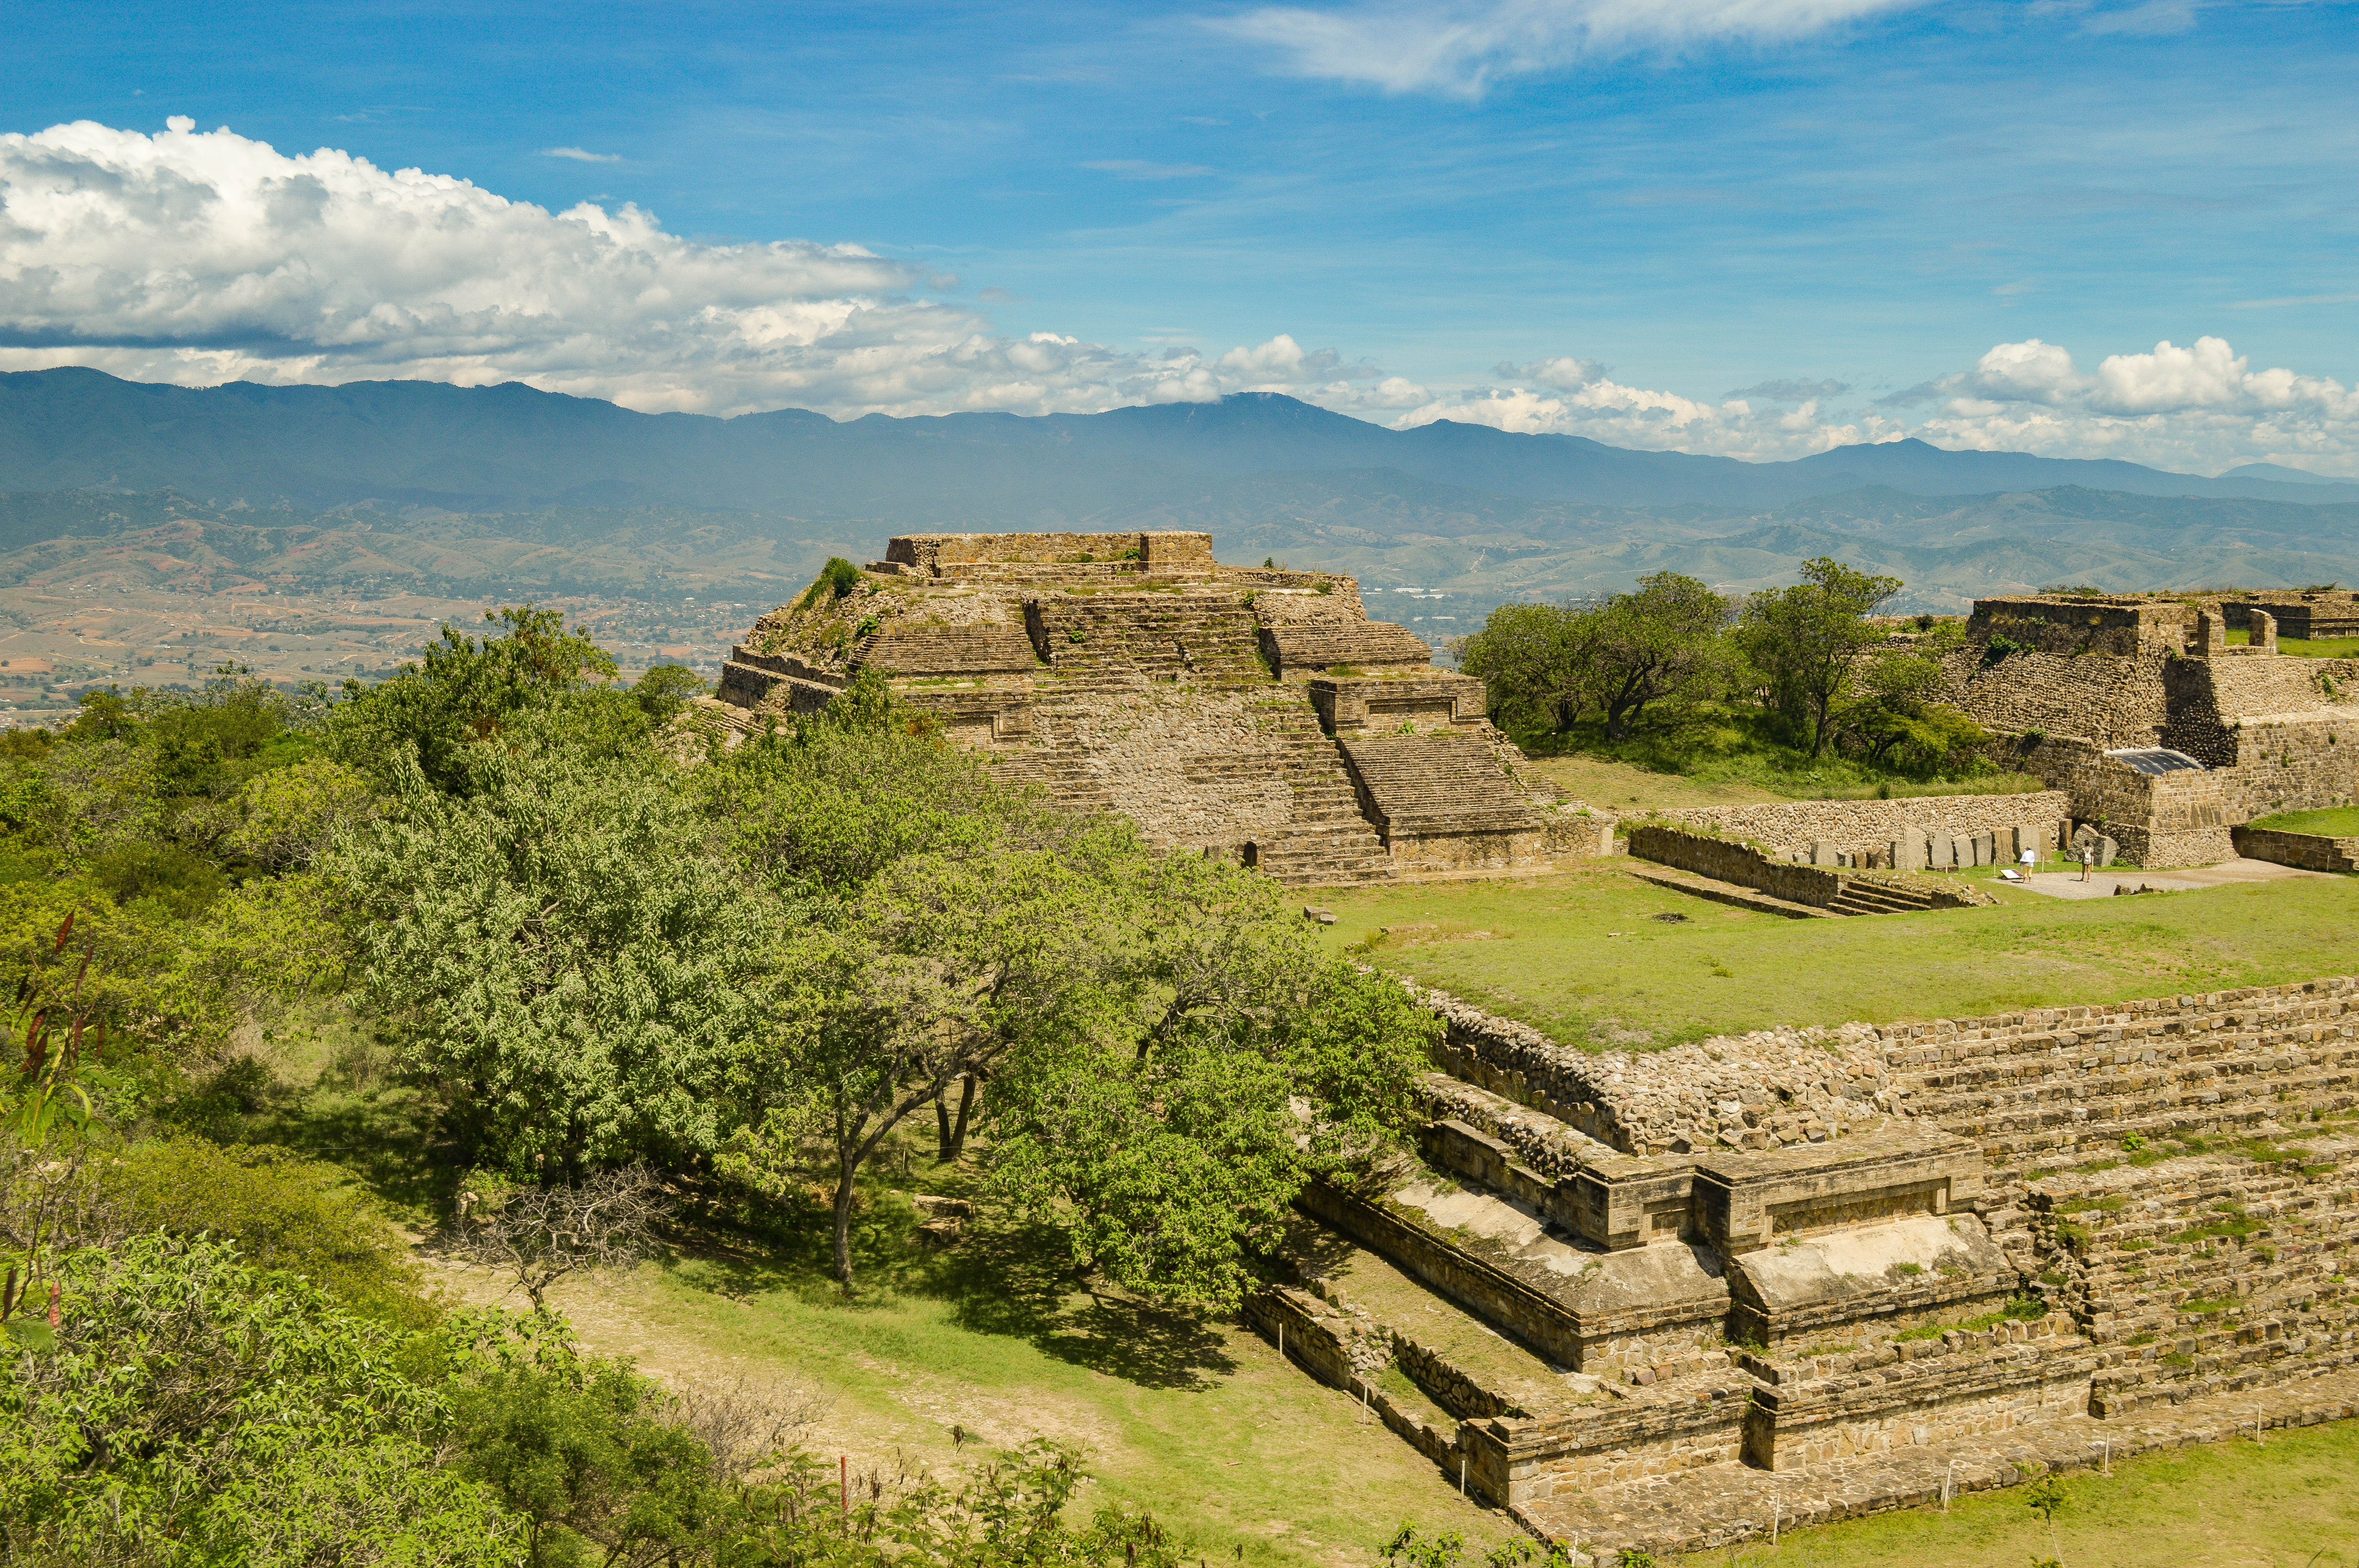 Image of sights to see in Mexico